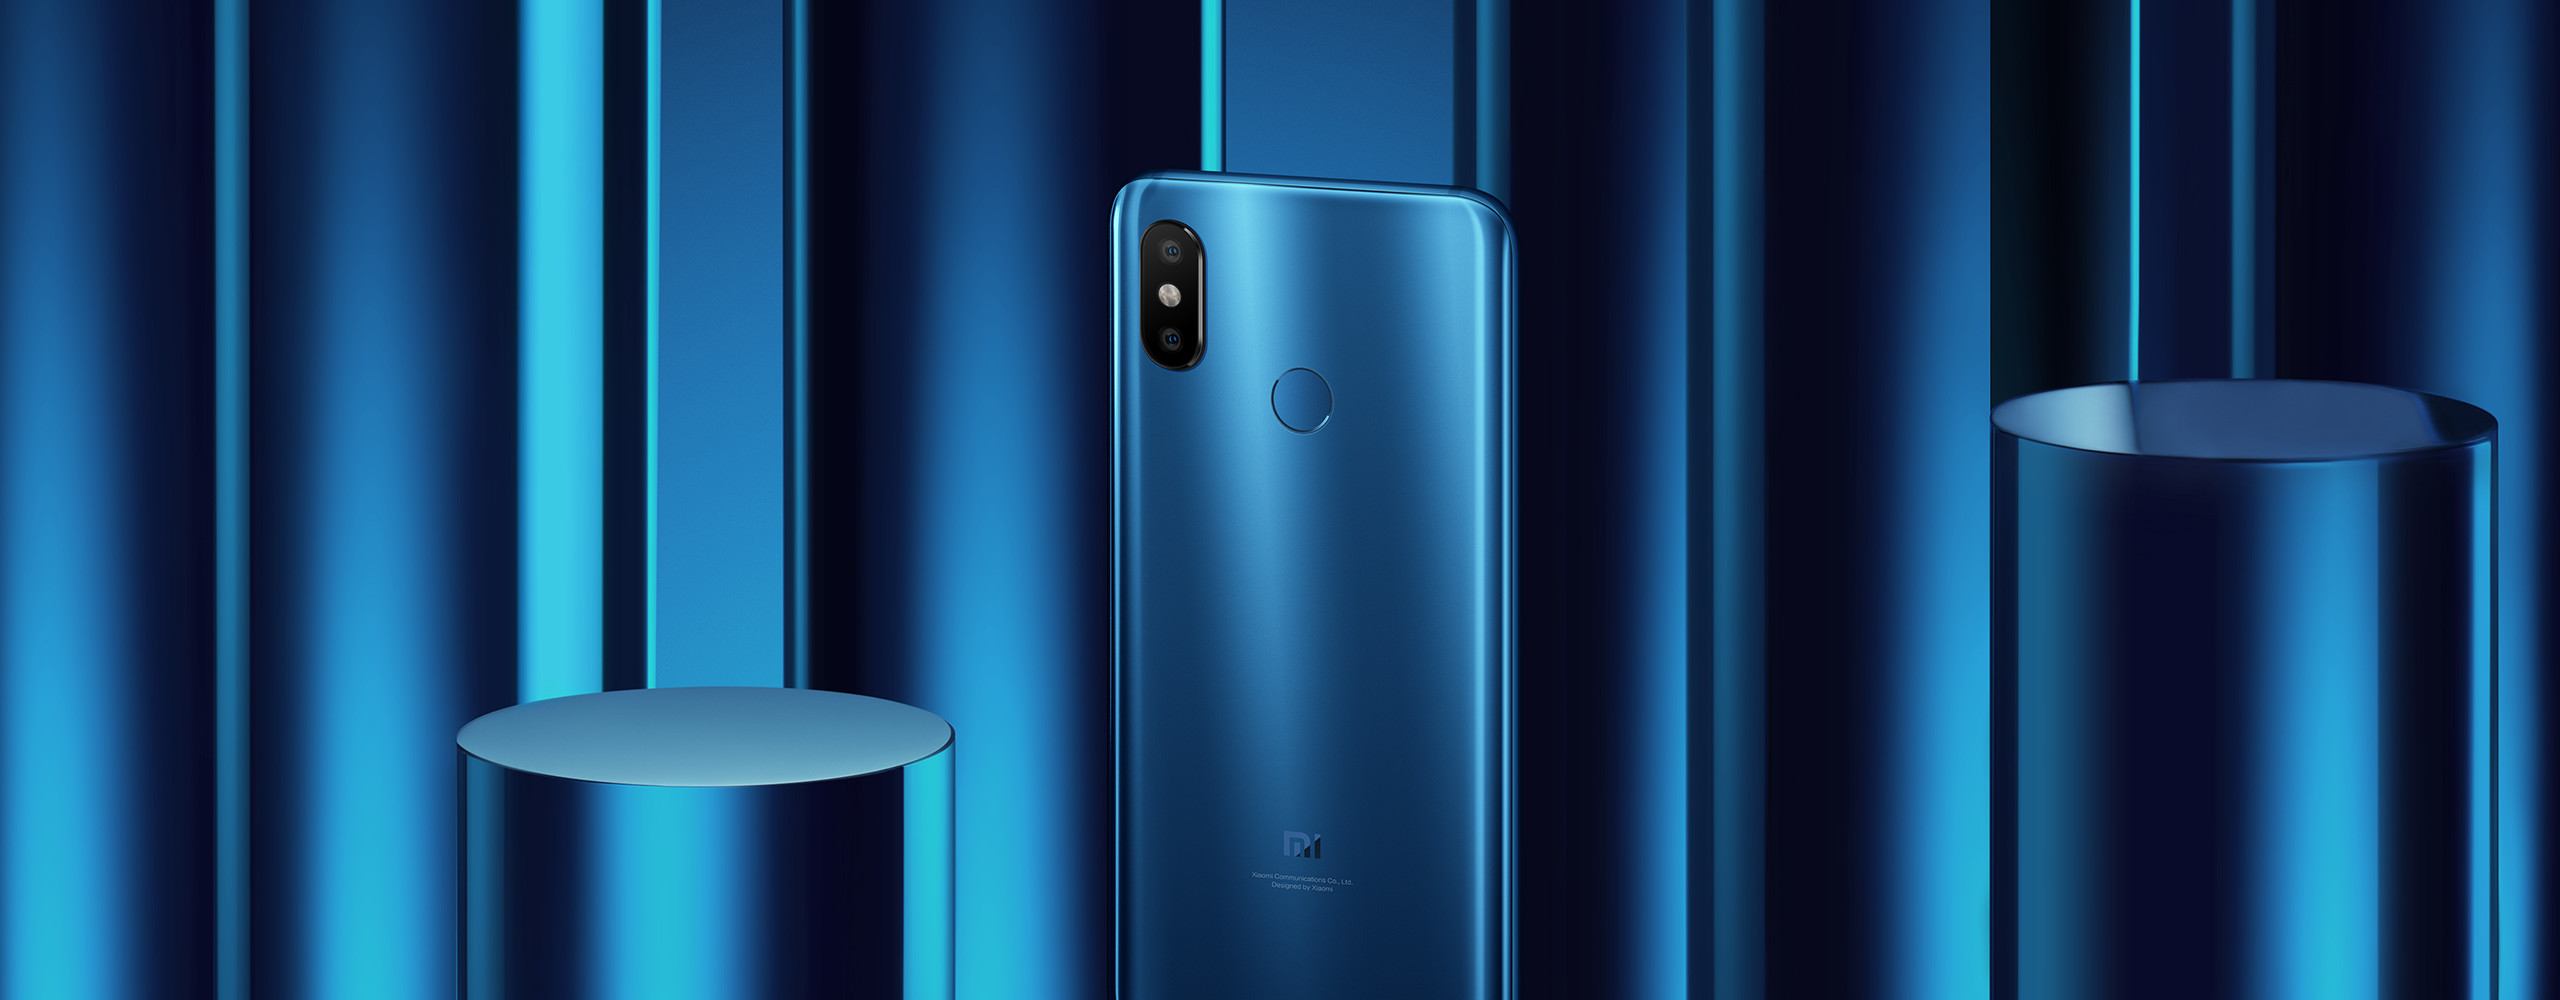 Xiaomi Mi 8 Specifications